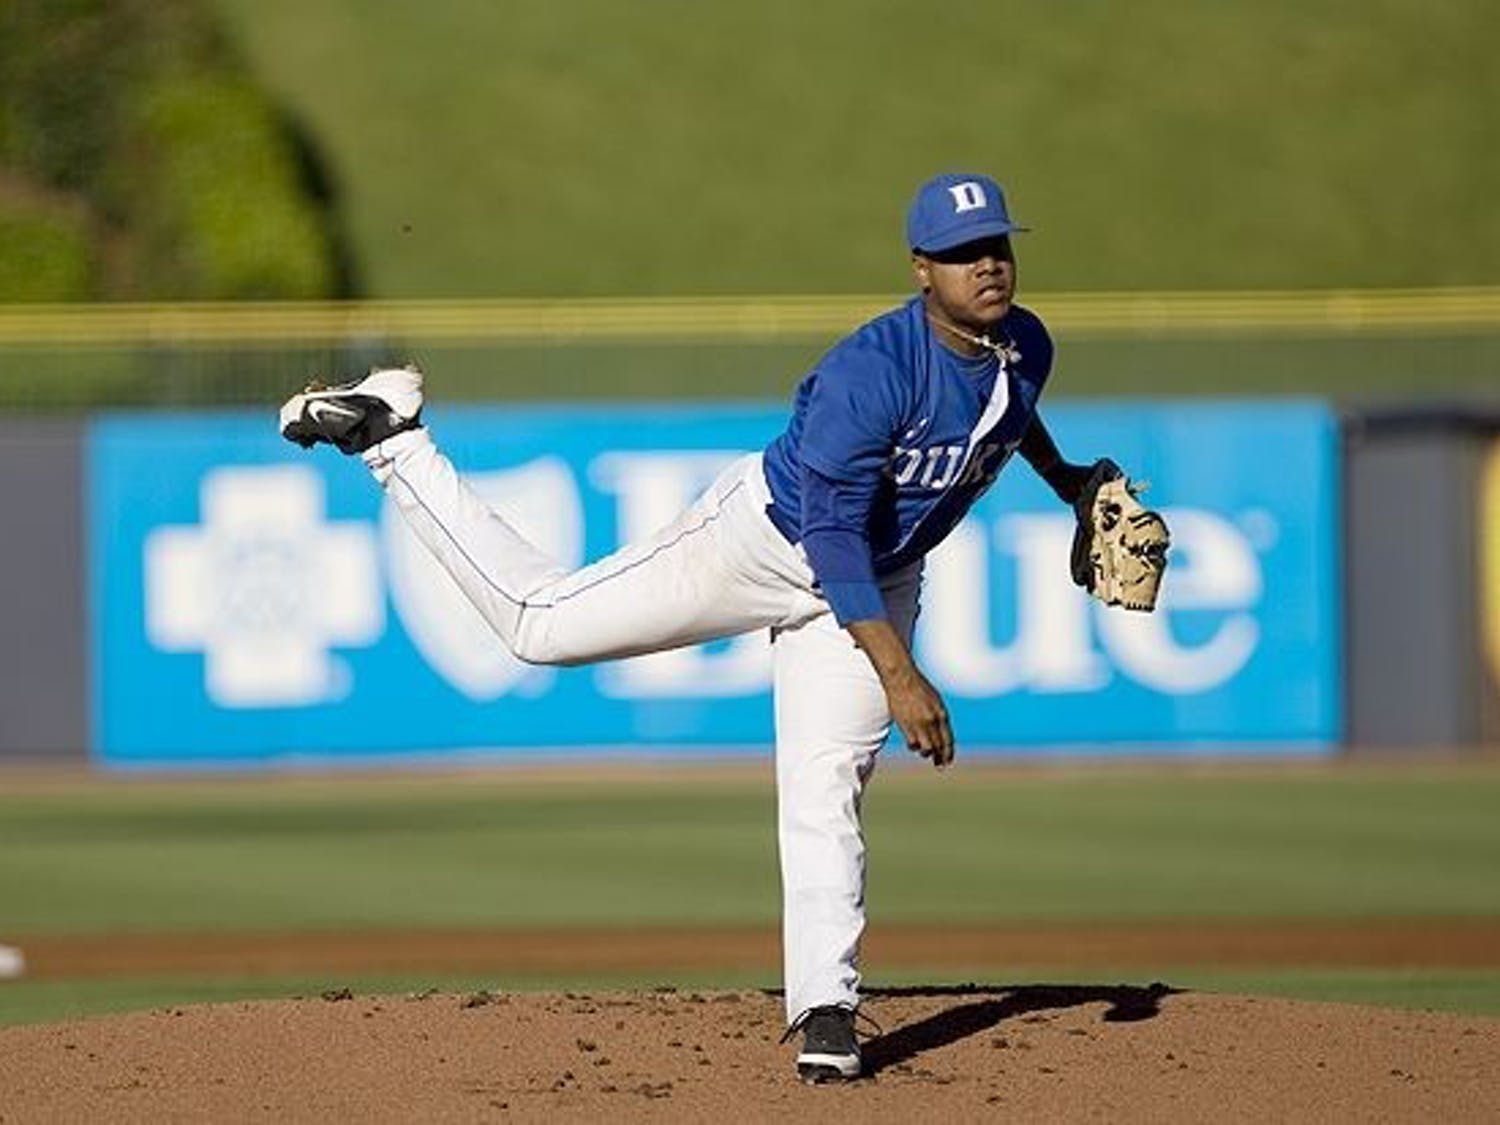 Marcus Stroman has looked sharp in his first four starts of the season.